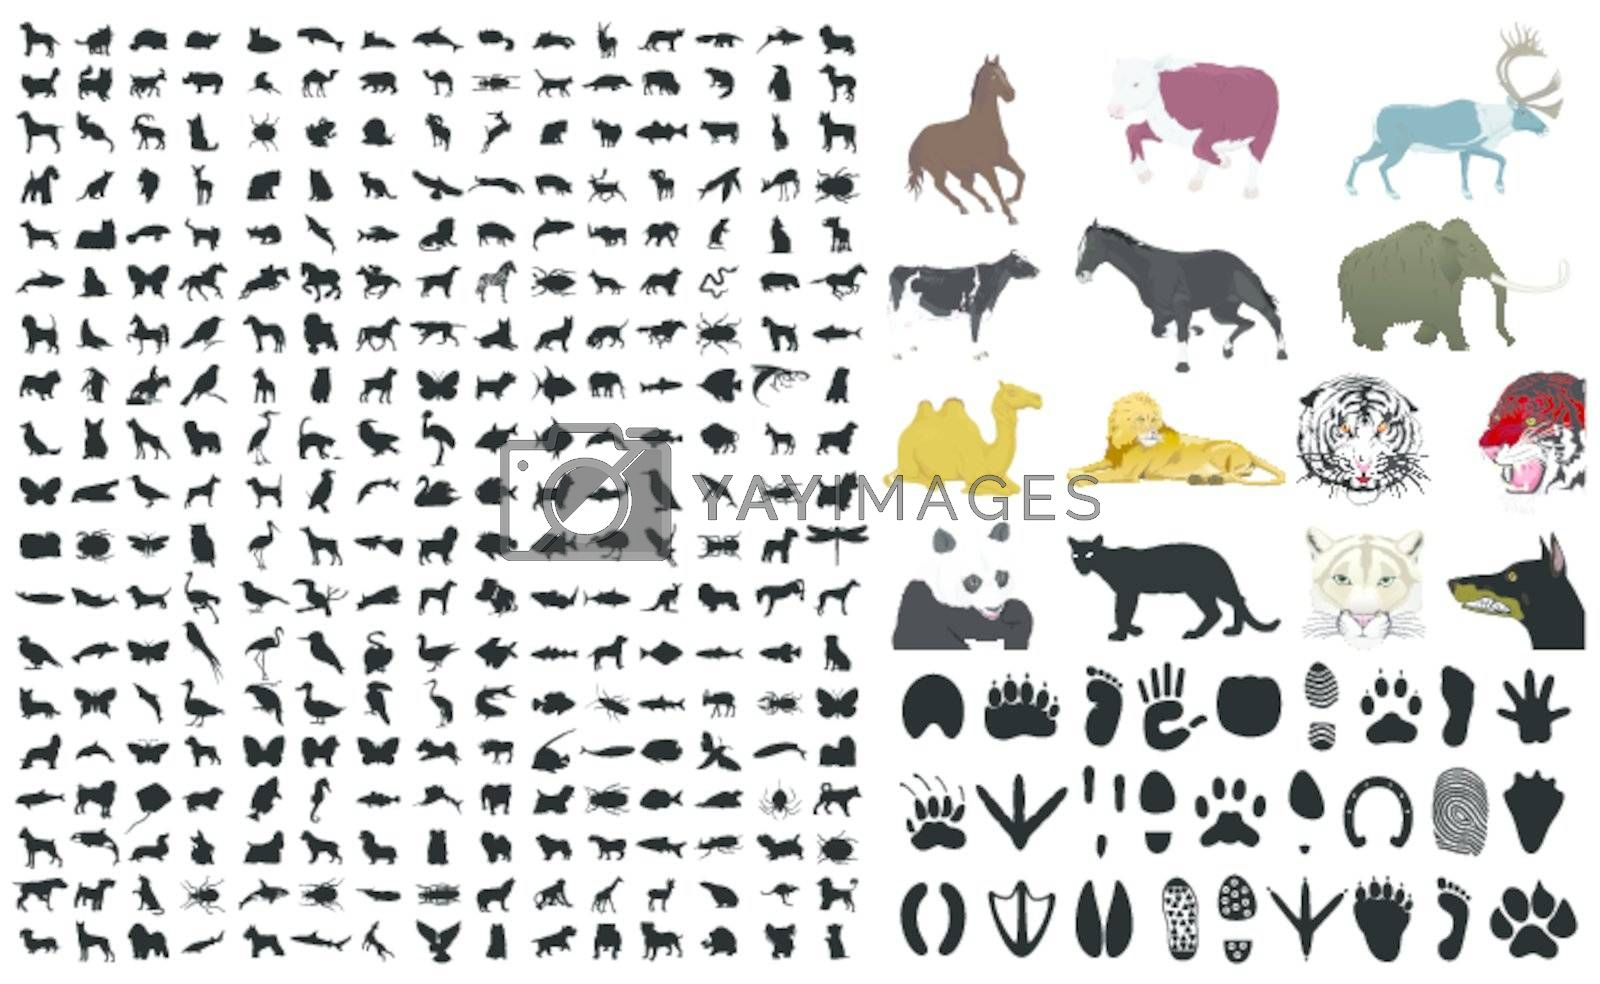 The big collection of animals. A vector illustration